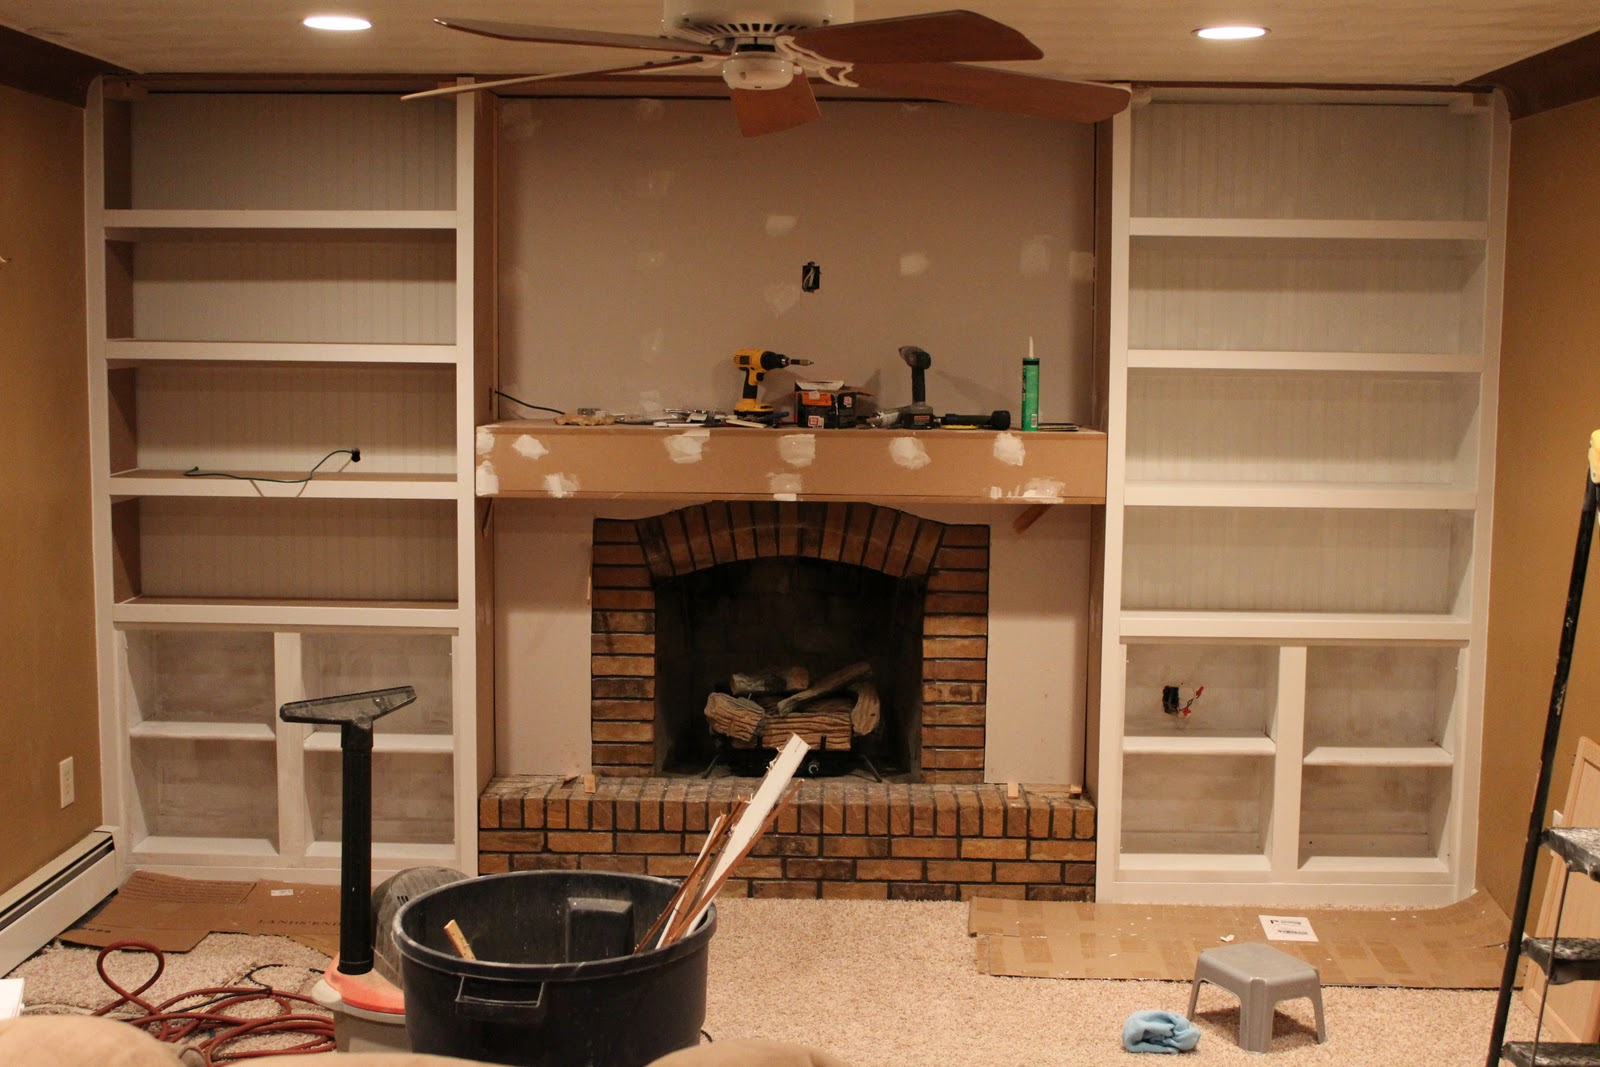 ... shelves. We also used dry wall to frame in the fireplace. The mantel